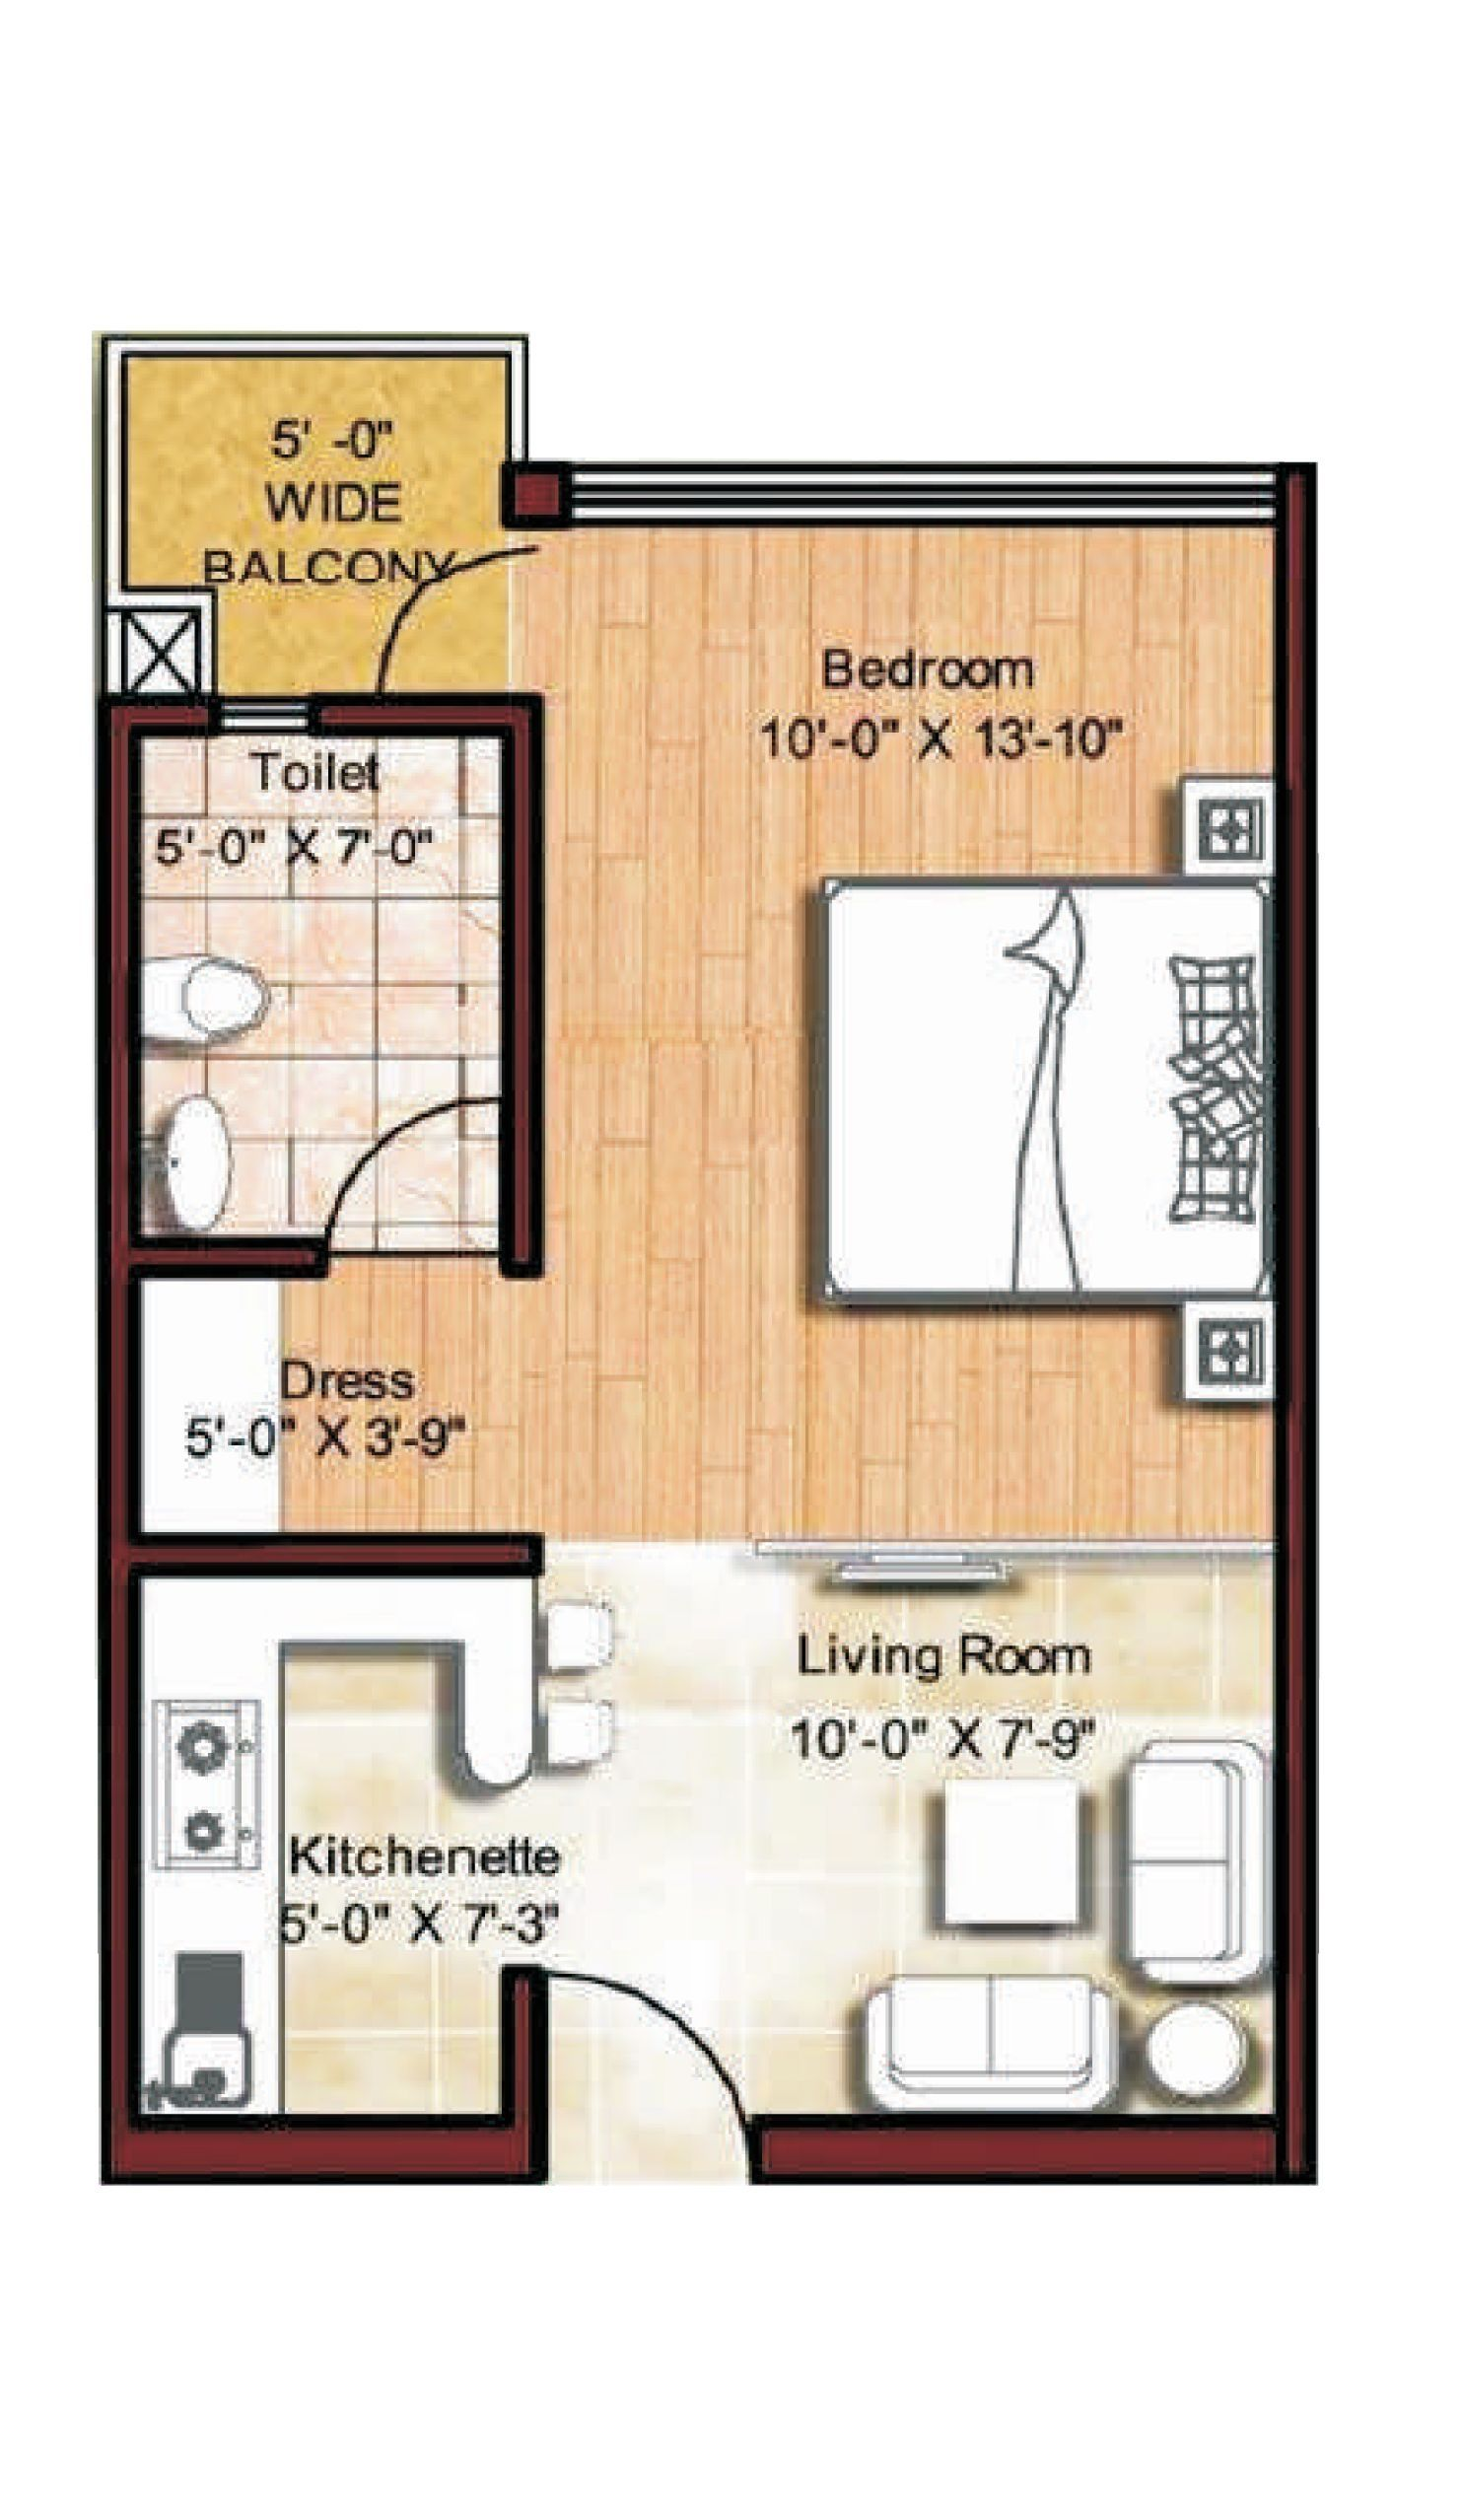 Unique Studio Apartment Floor Plans Studio Apartment Floor Plans Studio Floor Plans Apartment Floor Plans